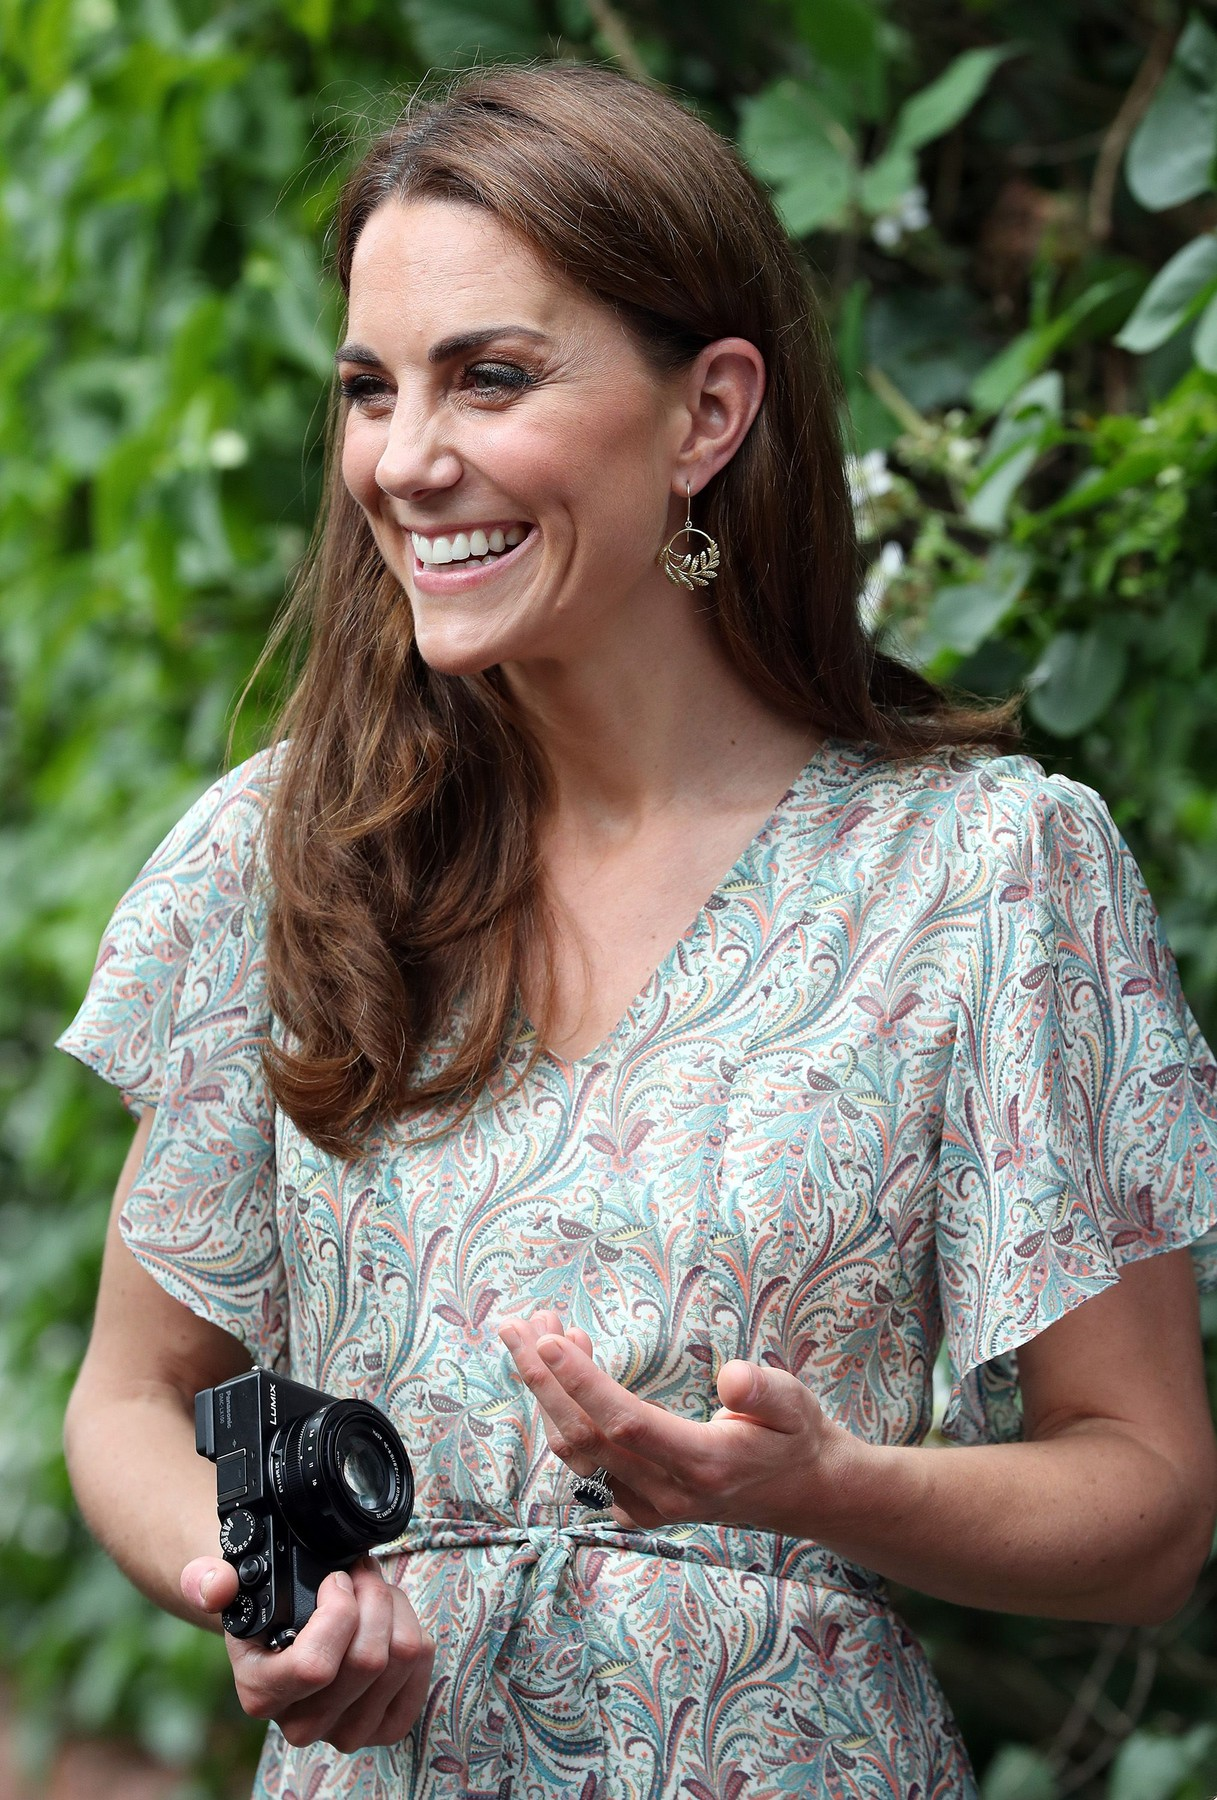 The Duchess of Cambridge joins a photography workshop with Action for Children and the Royal Photographic Society at Warren Park Children's Centre, Kingston Upon Thames, London, UK, on the 25th June 2019.  Picture by Chris Jackson/WPA-Pool//GEORGEROGERS_ROGERS0039/1906260853/Credit:GEORGE ROGERS/SIPA/1906260936, Image: 451620179, License: Rights-managed, Restrictions: , Model Release: no, Credit line: GEORGE ROGERS / Sipa Press / Profimedia